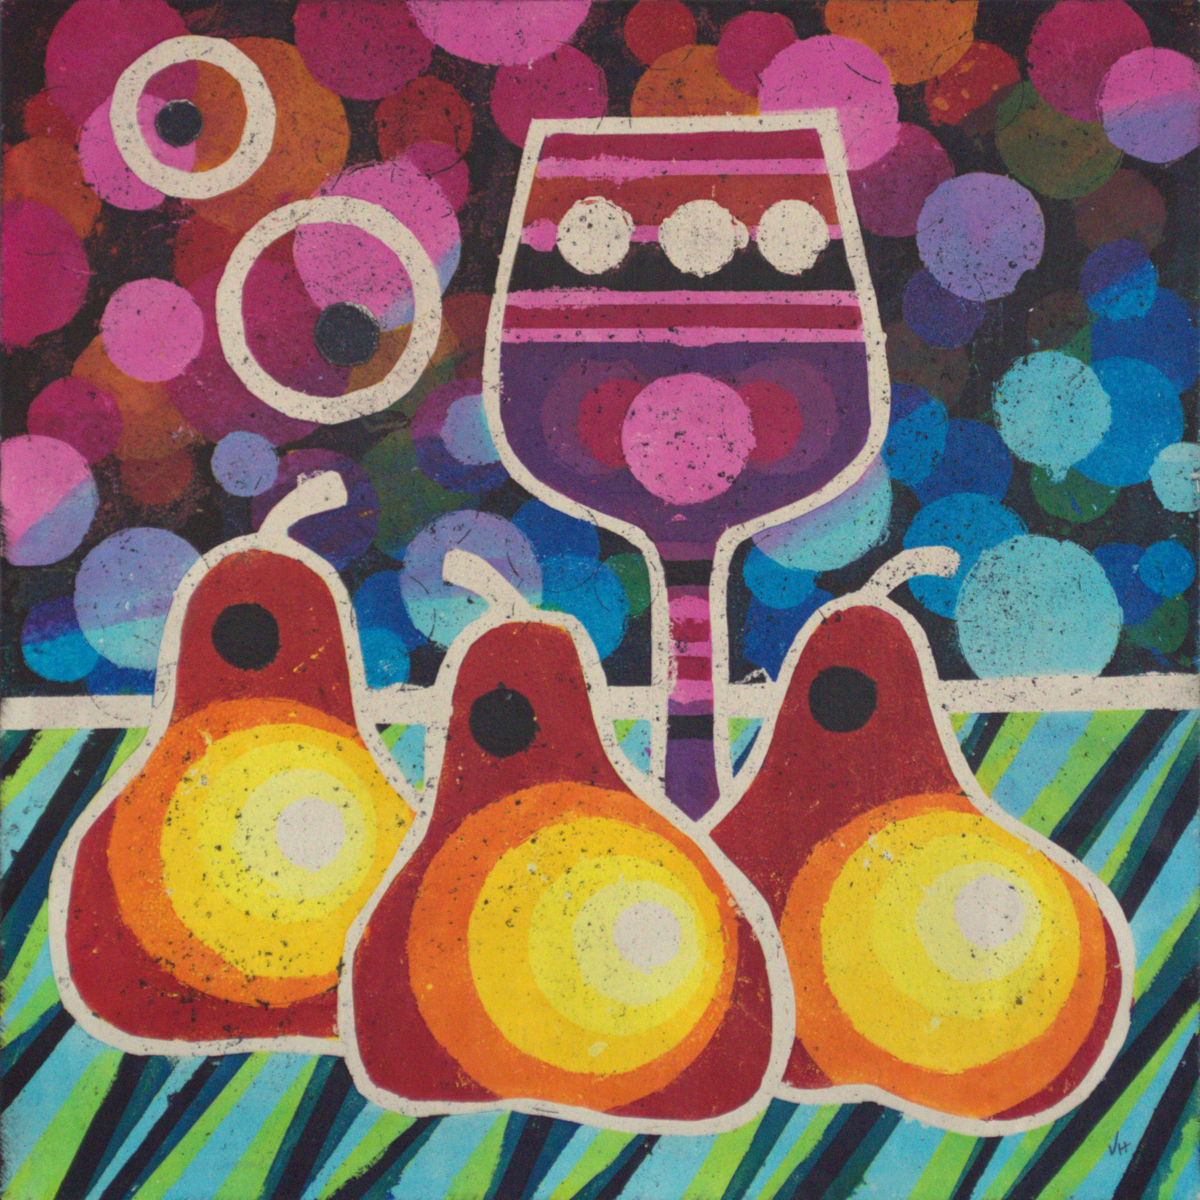 Wine & Pears 12 by Valerie Hildebrand (large view)